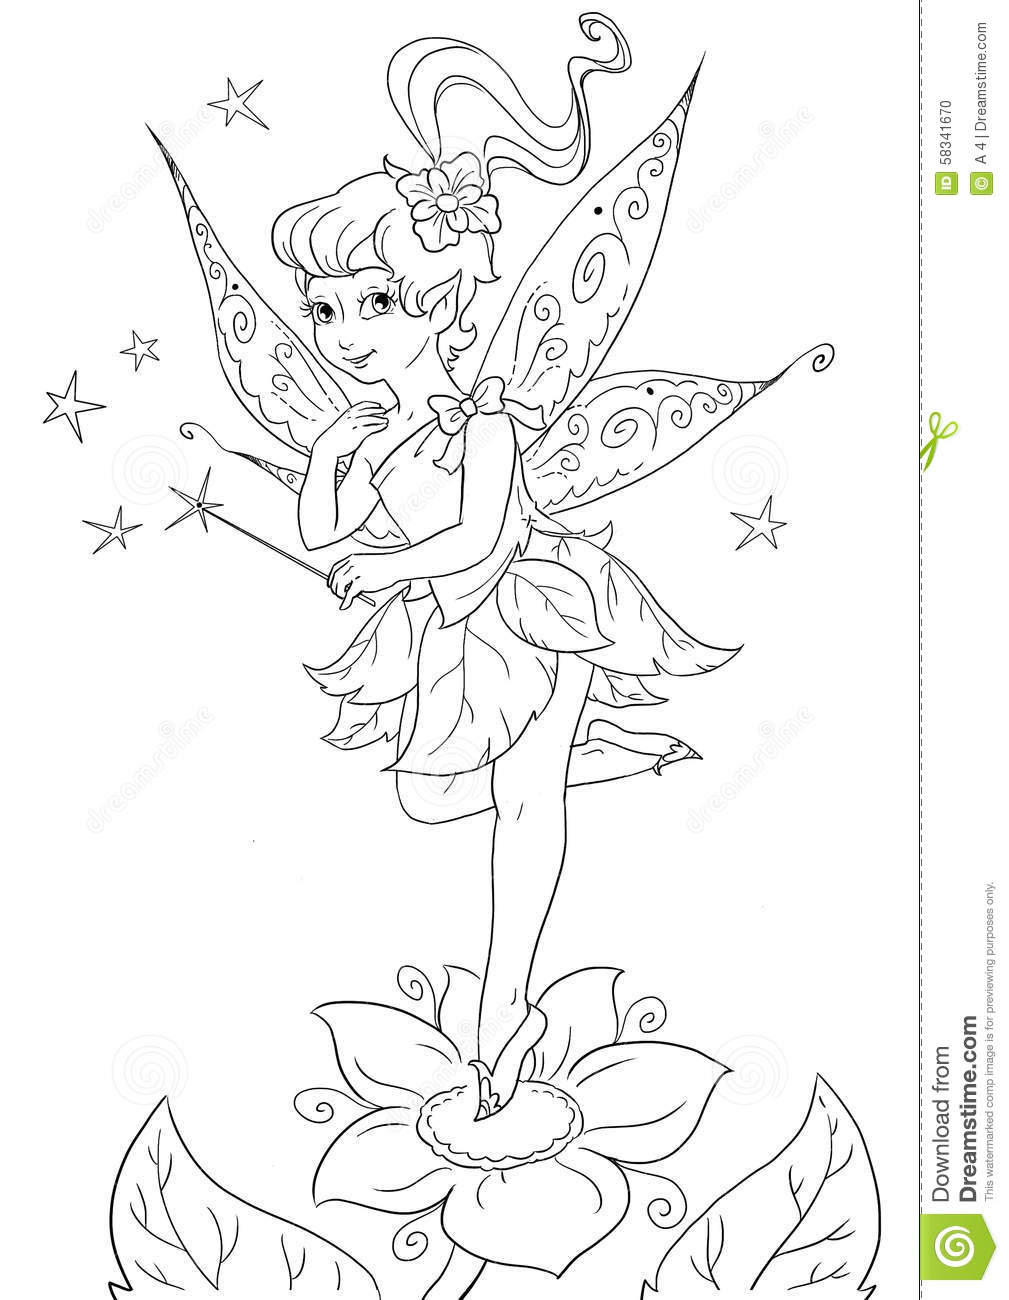 Flower Fairy Stock Illustration - Image: 58341670